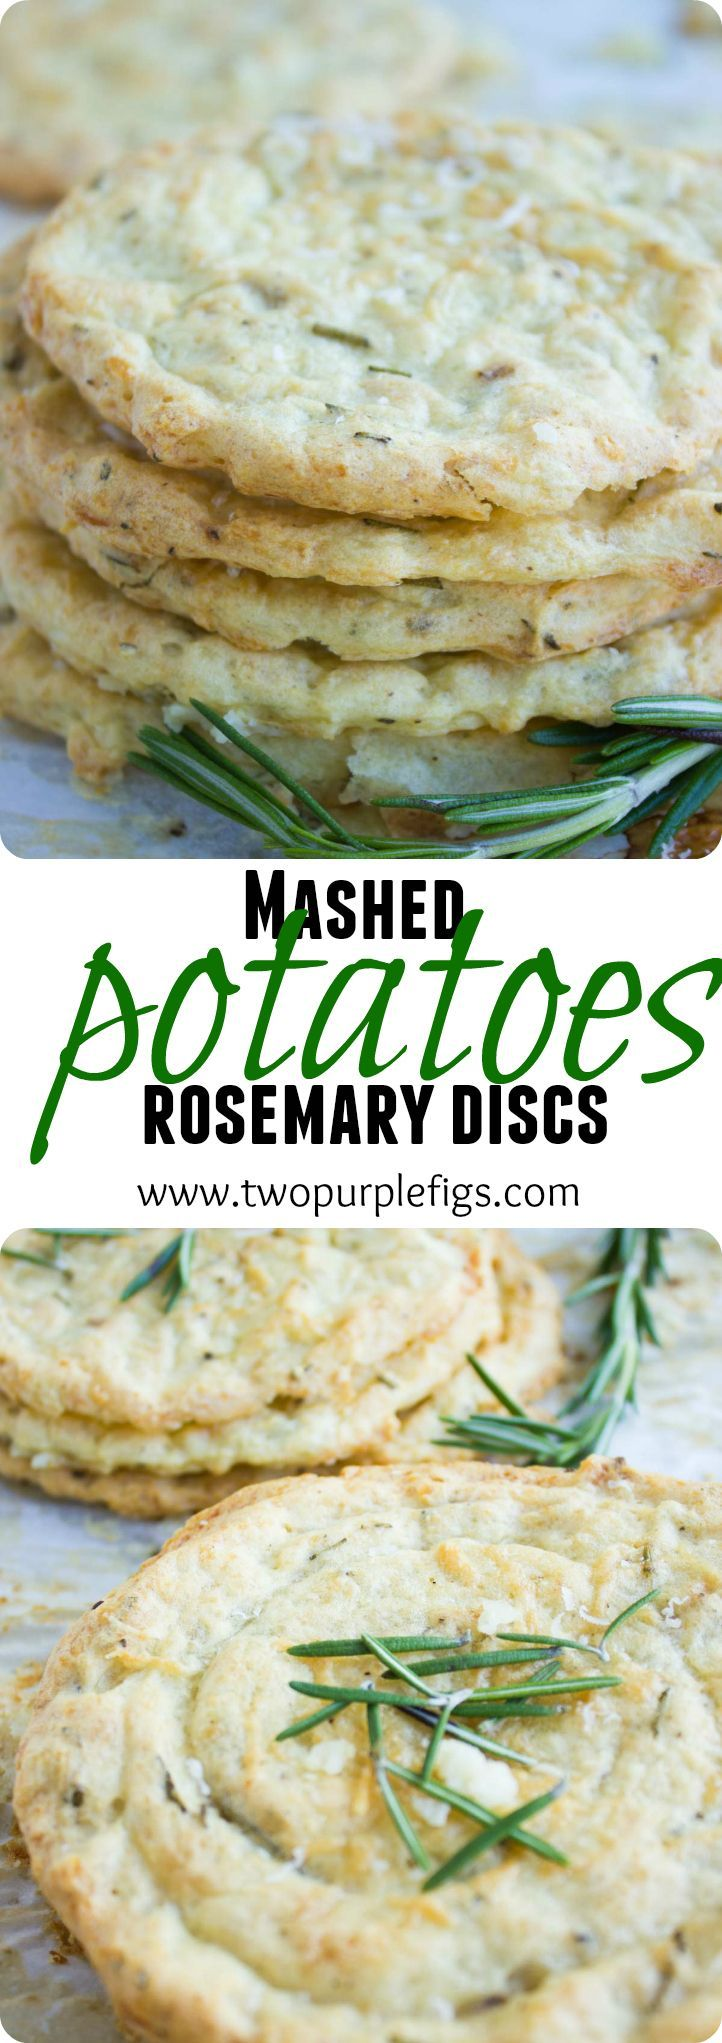 Mashed Potato Rosemary Crips. Got left over mashed potatoes? Transform them into this fabulous and SIMPLE recipe--a crispy mashed potato cookie with a soft interior flavored with fresh rosemary! Perfectly Gluten Free. www.twopurplefigs.com